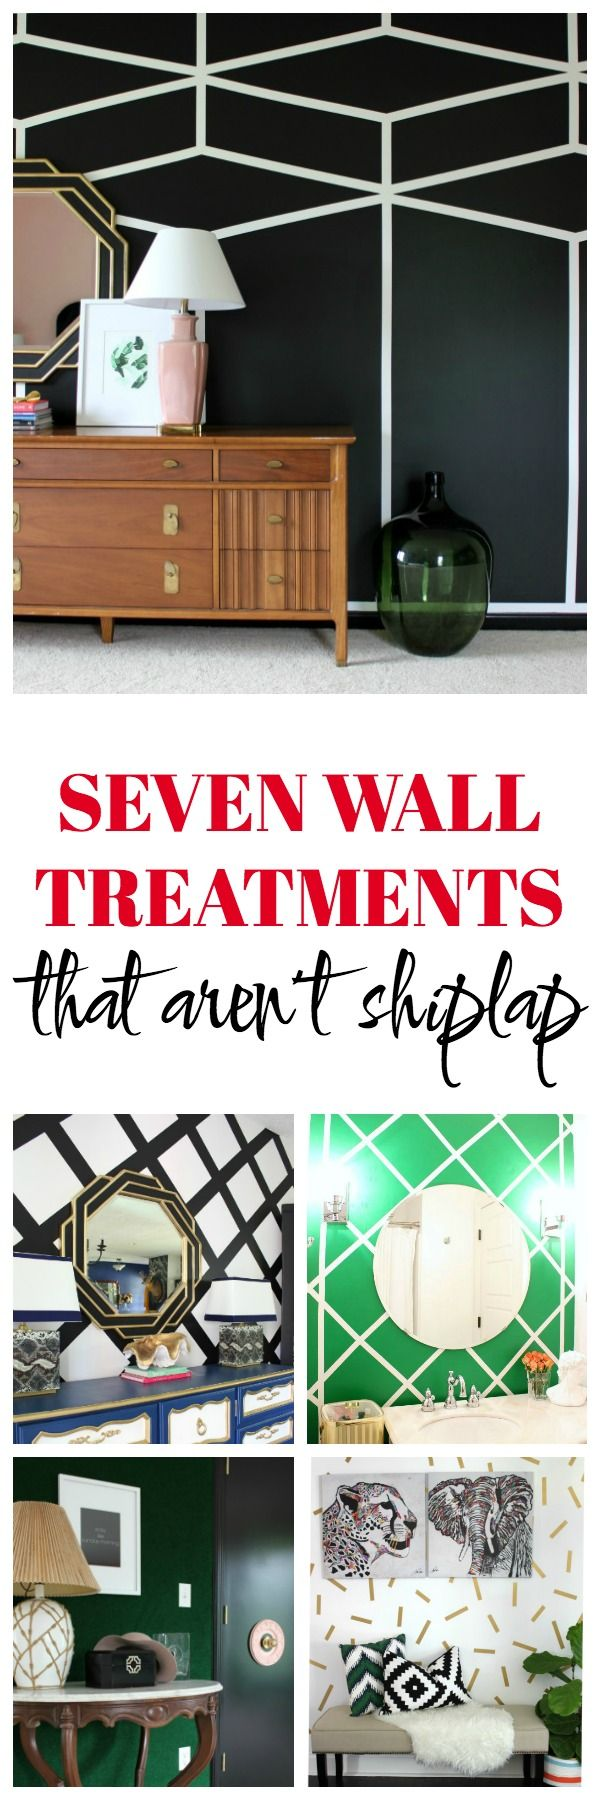 Seven Wall Treatments That Aren't Shiplap: Looking to create an accent wall or…